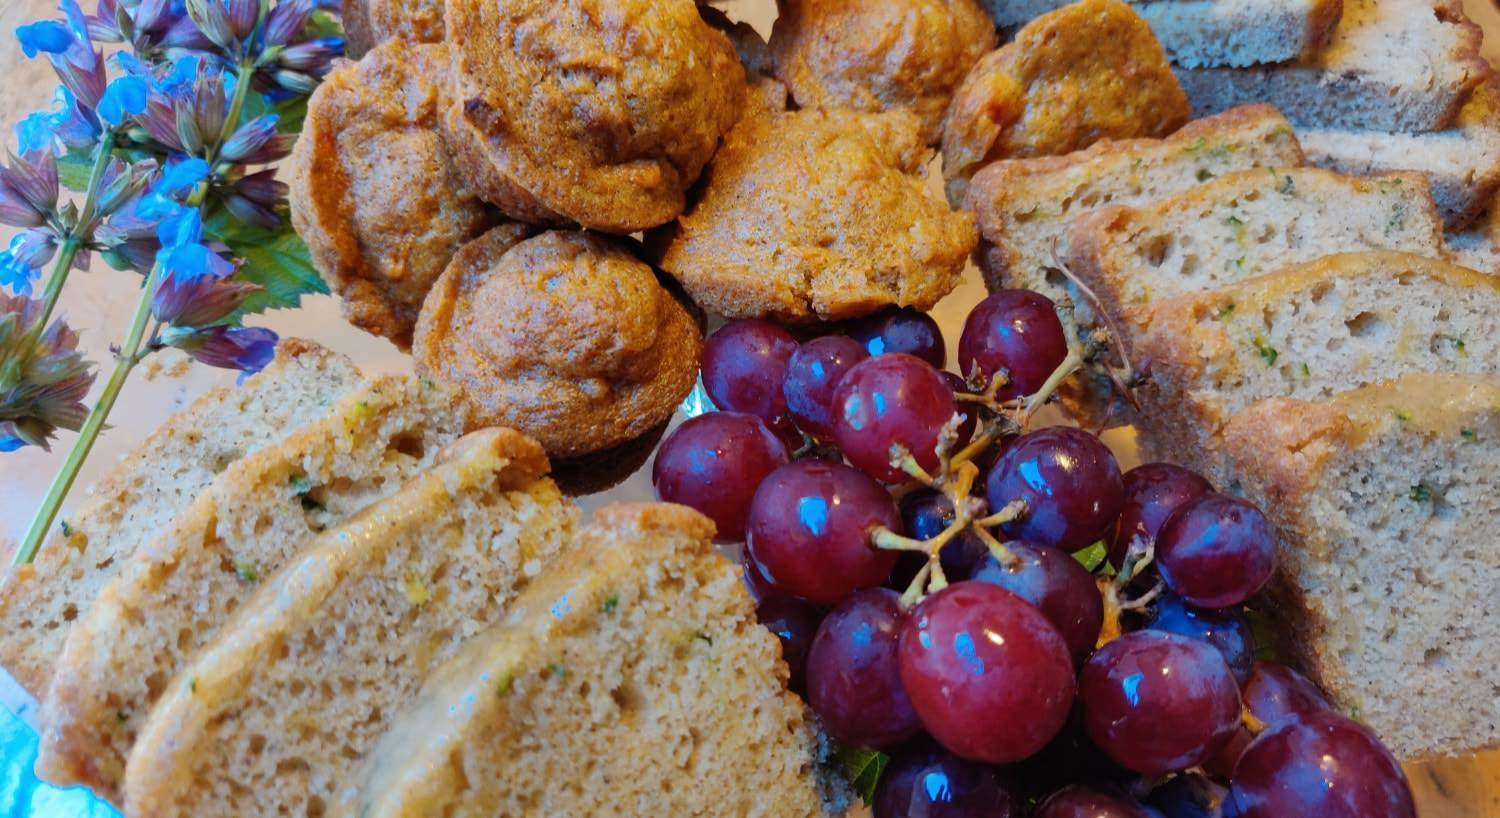 Close up view of breads and muffins and purple grapes